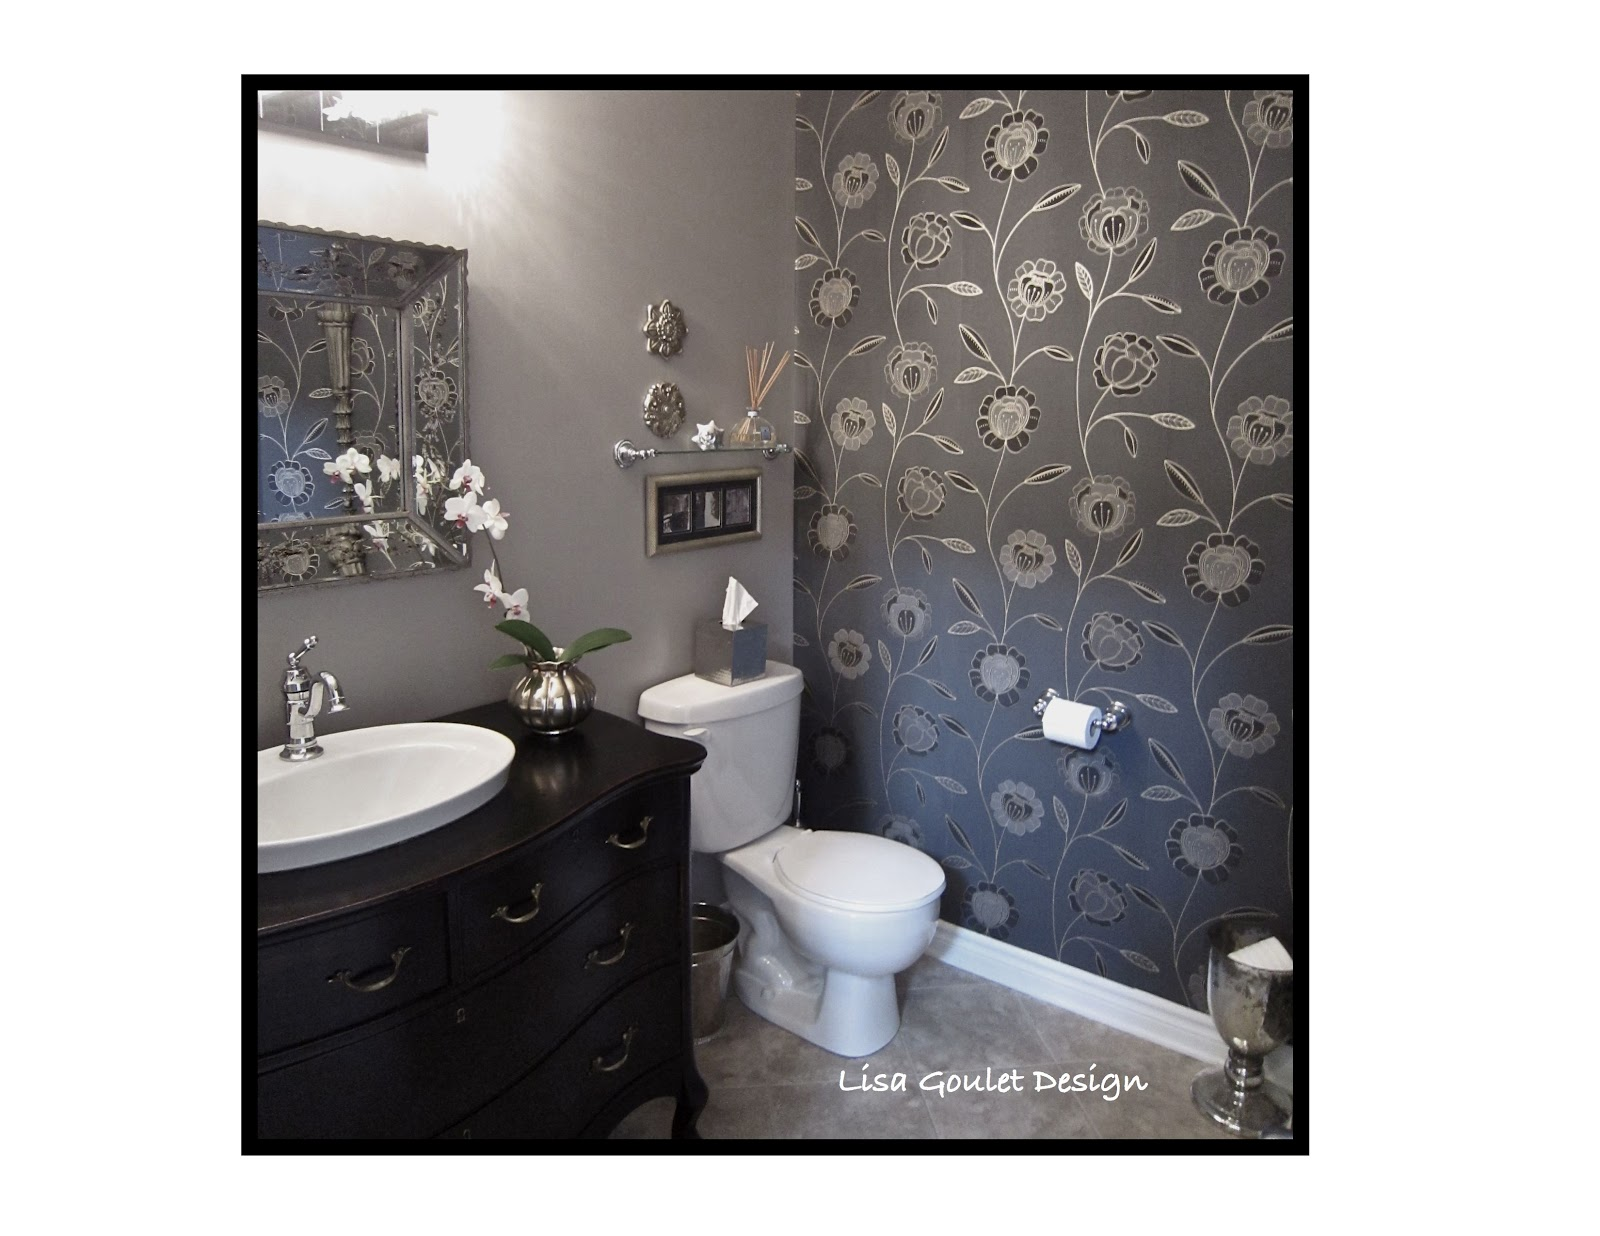 Toilet design toilet design room design ideas room for Washroom decoration designs